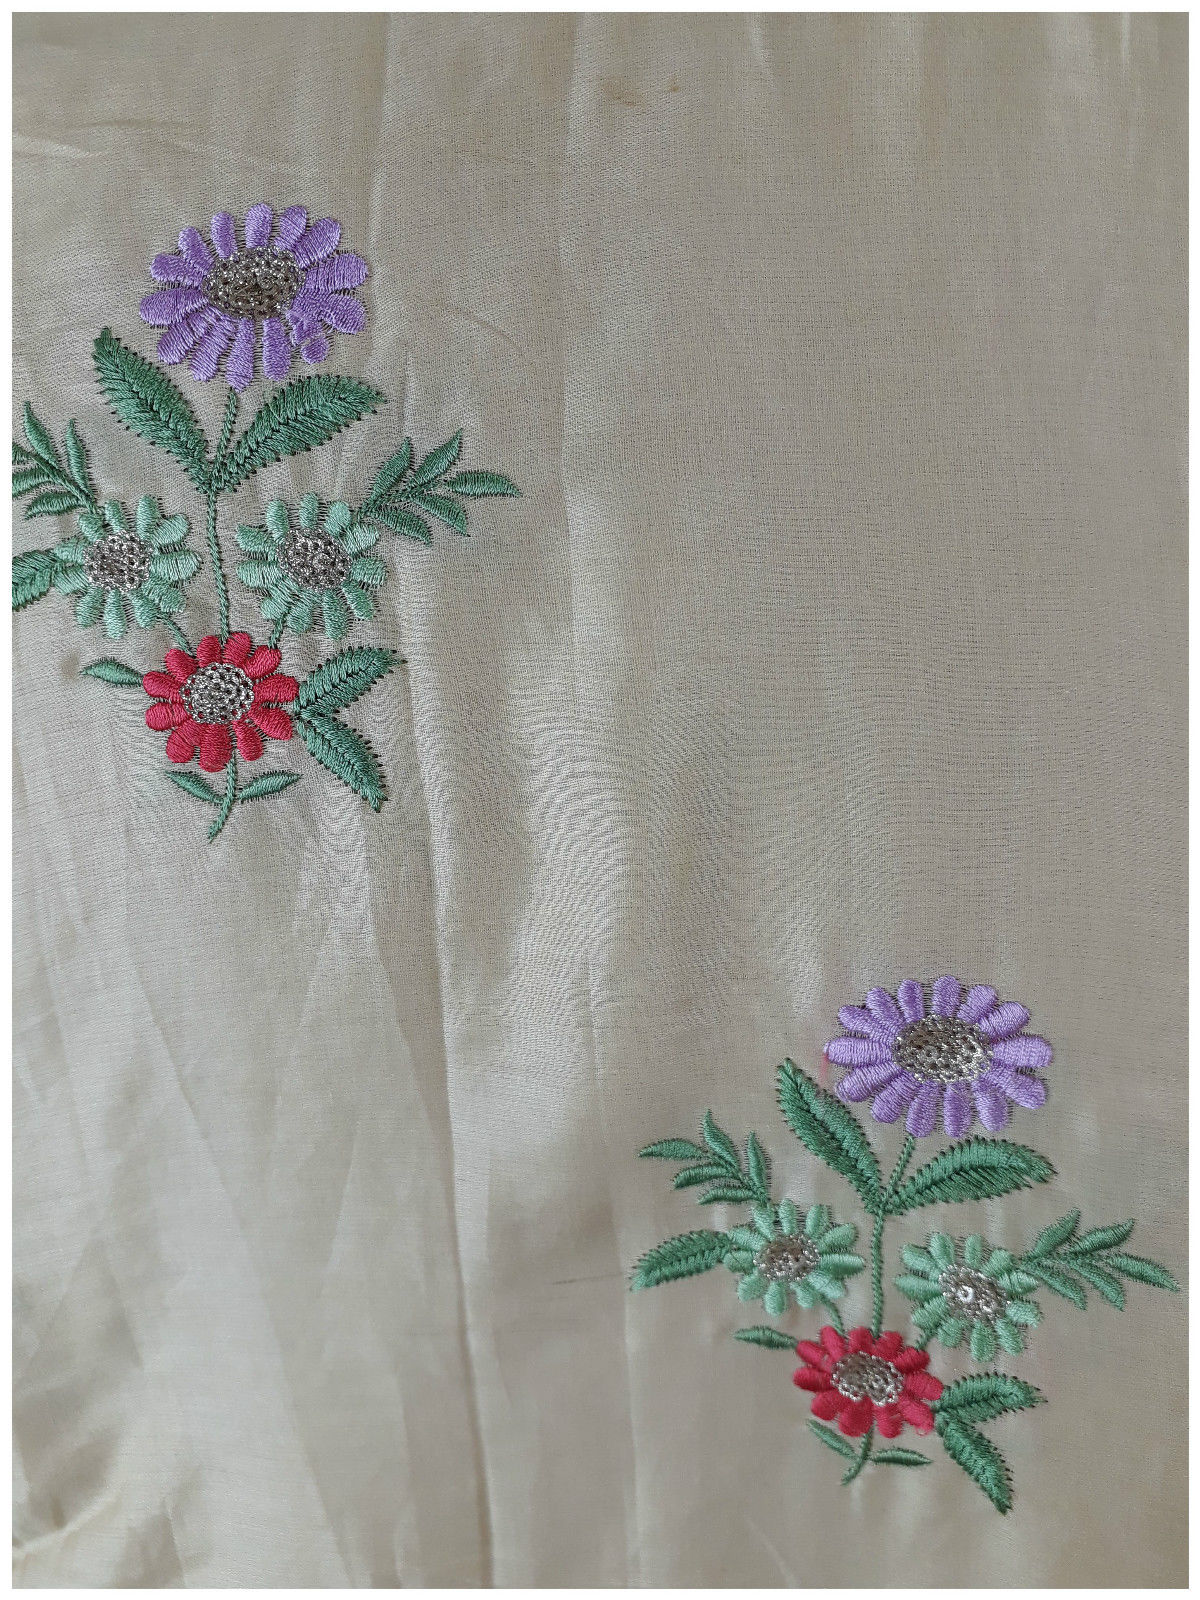 buy running fabric online india embroidery materials buy online Cotton Beige 41 inches Wide 1720